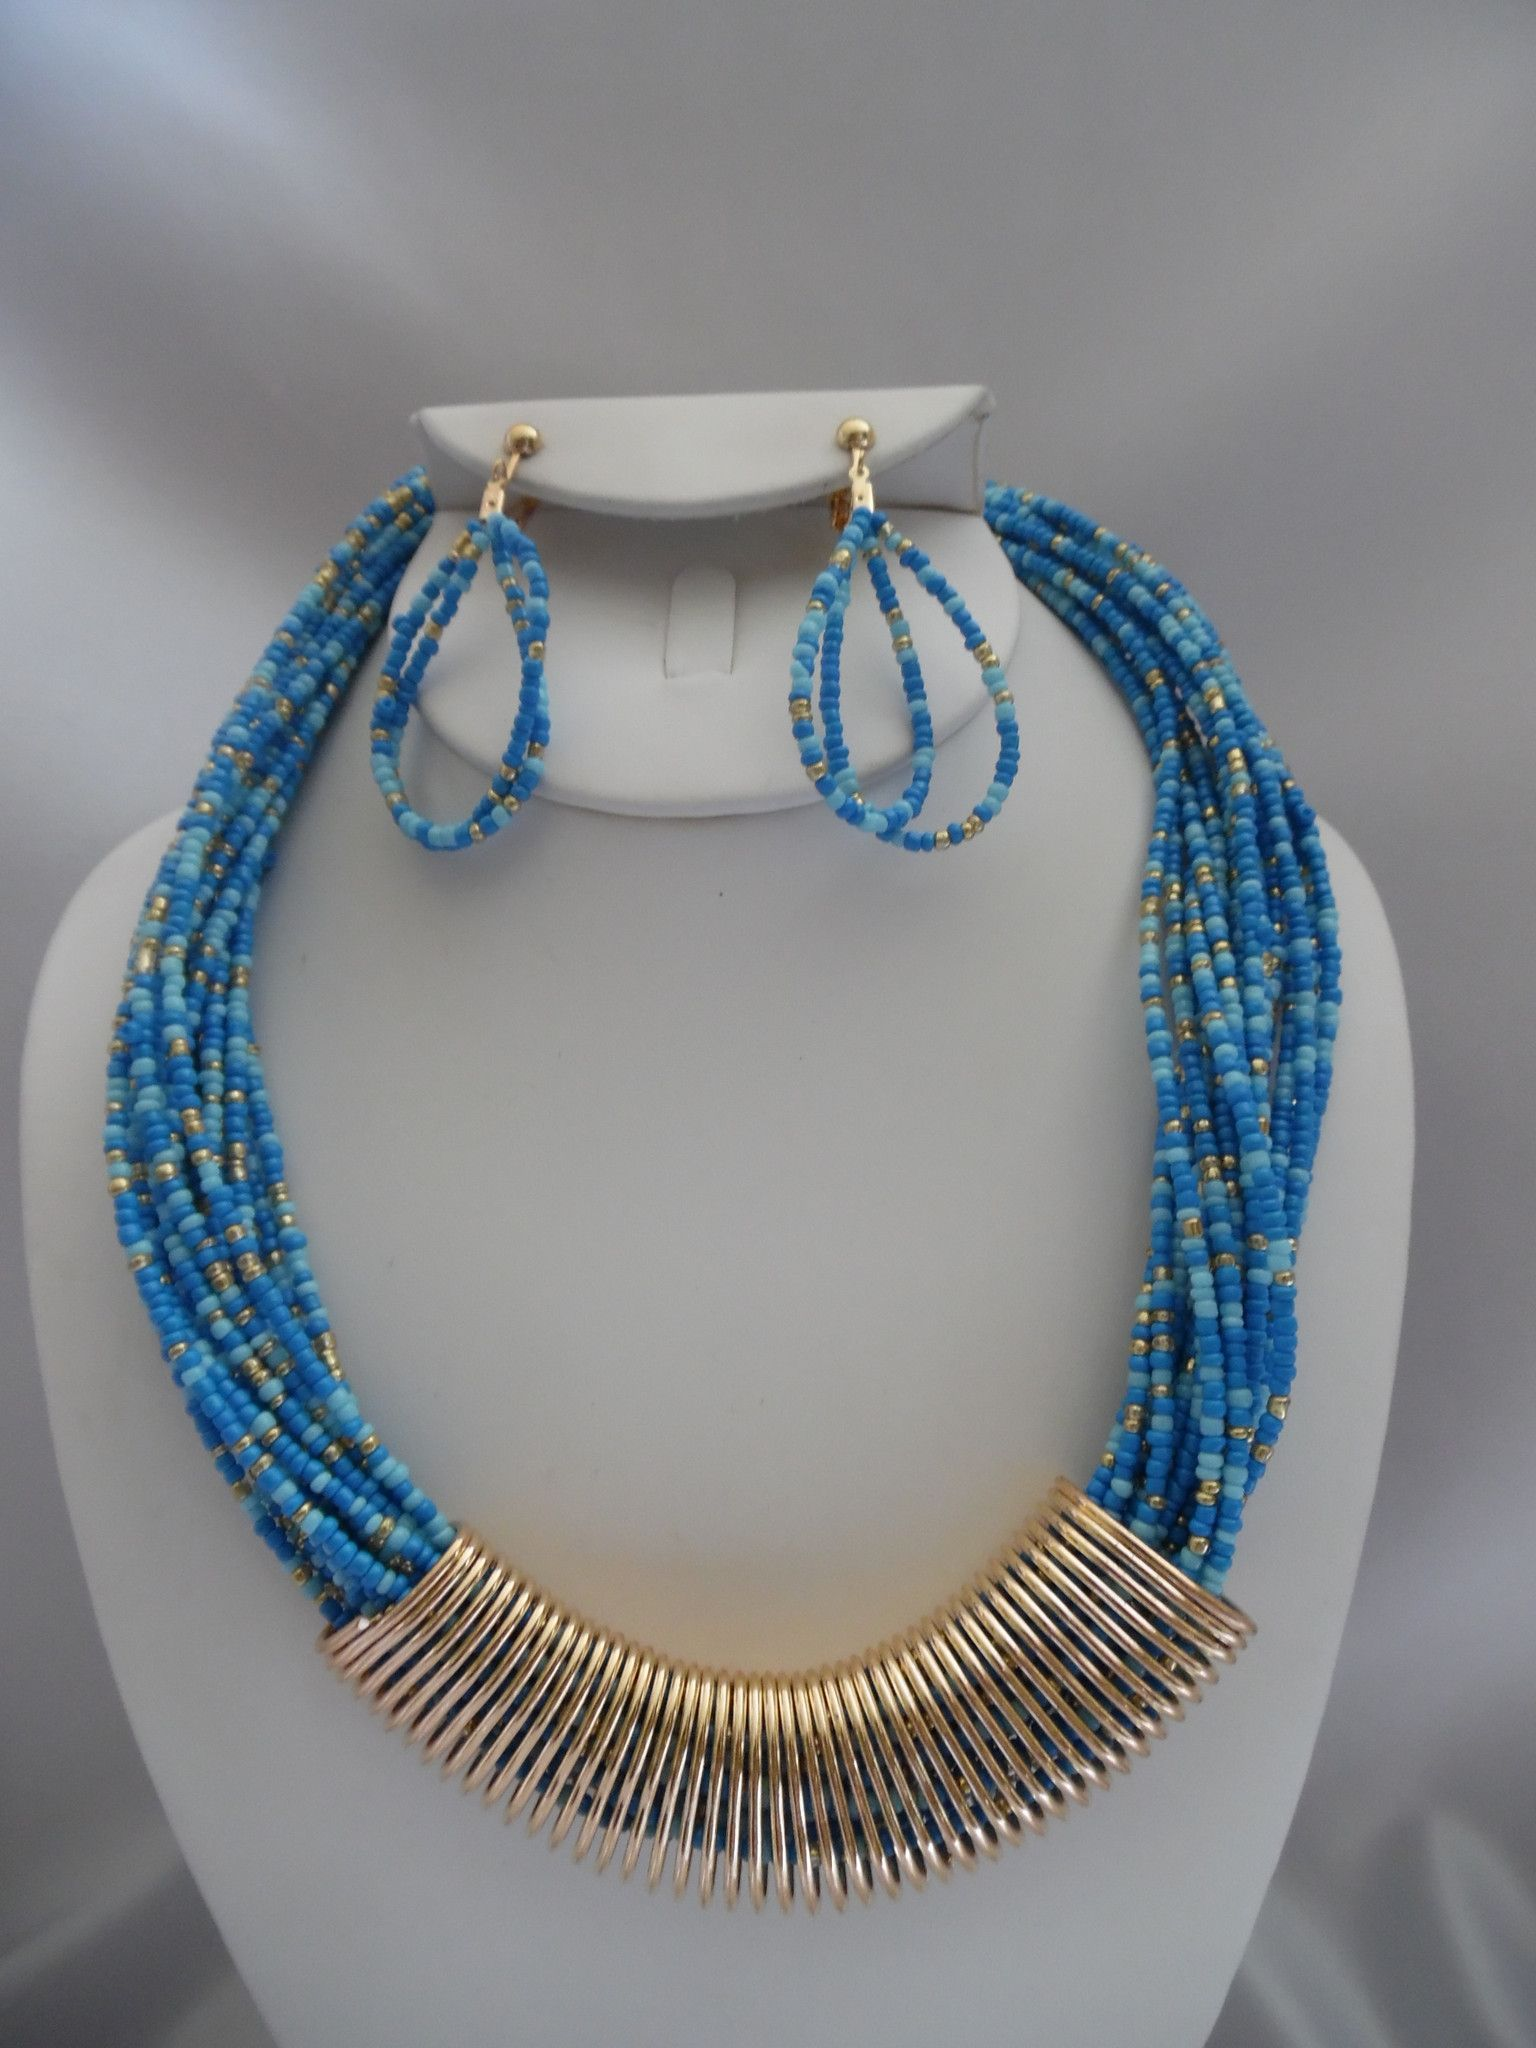 Visit: hipandcoolcliponearringstwo.com and receive up to 30% off. CLIP ON EARRINGS BLUE & GOLD MULTI COLORED SEED BEAD NECKLACE SET  $15.99 http://hipandcoolcliponearringstwo.com